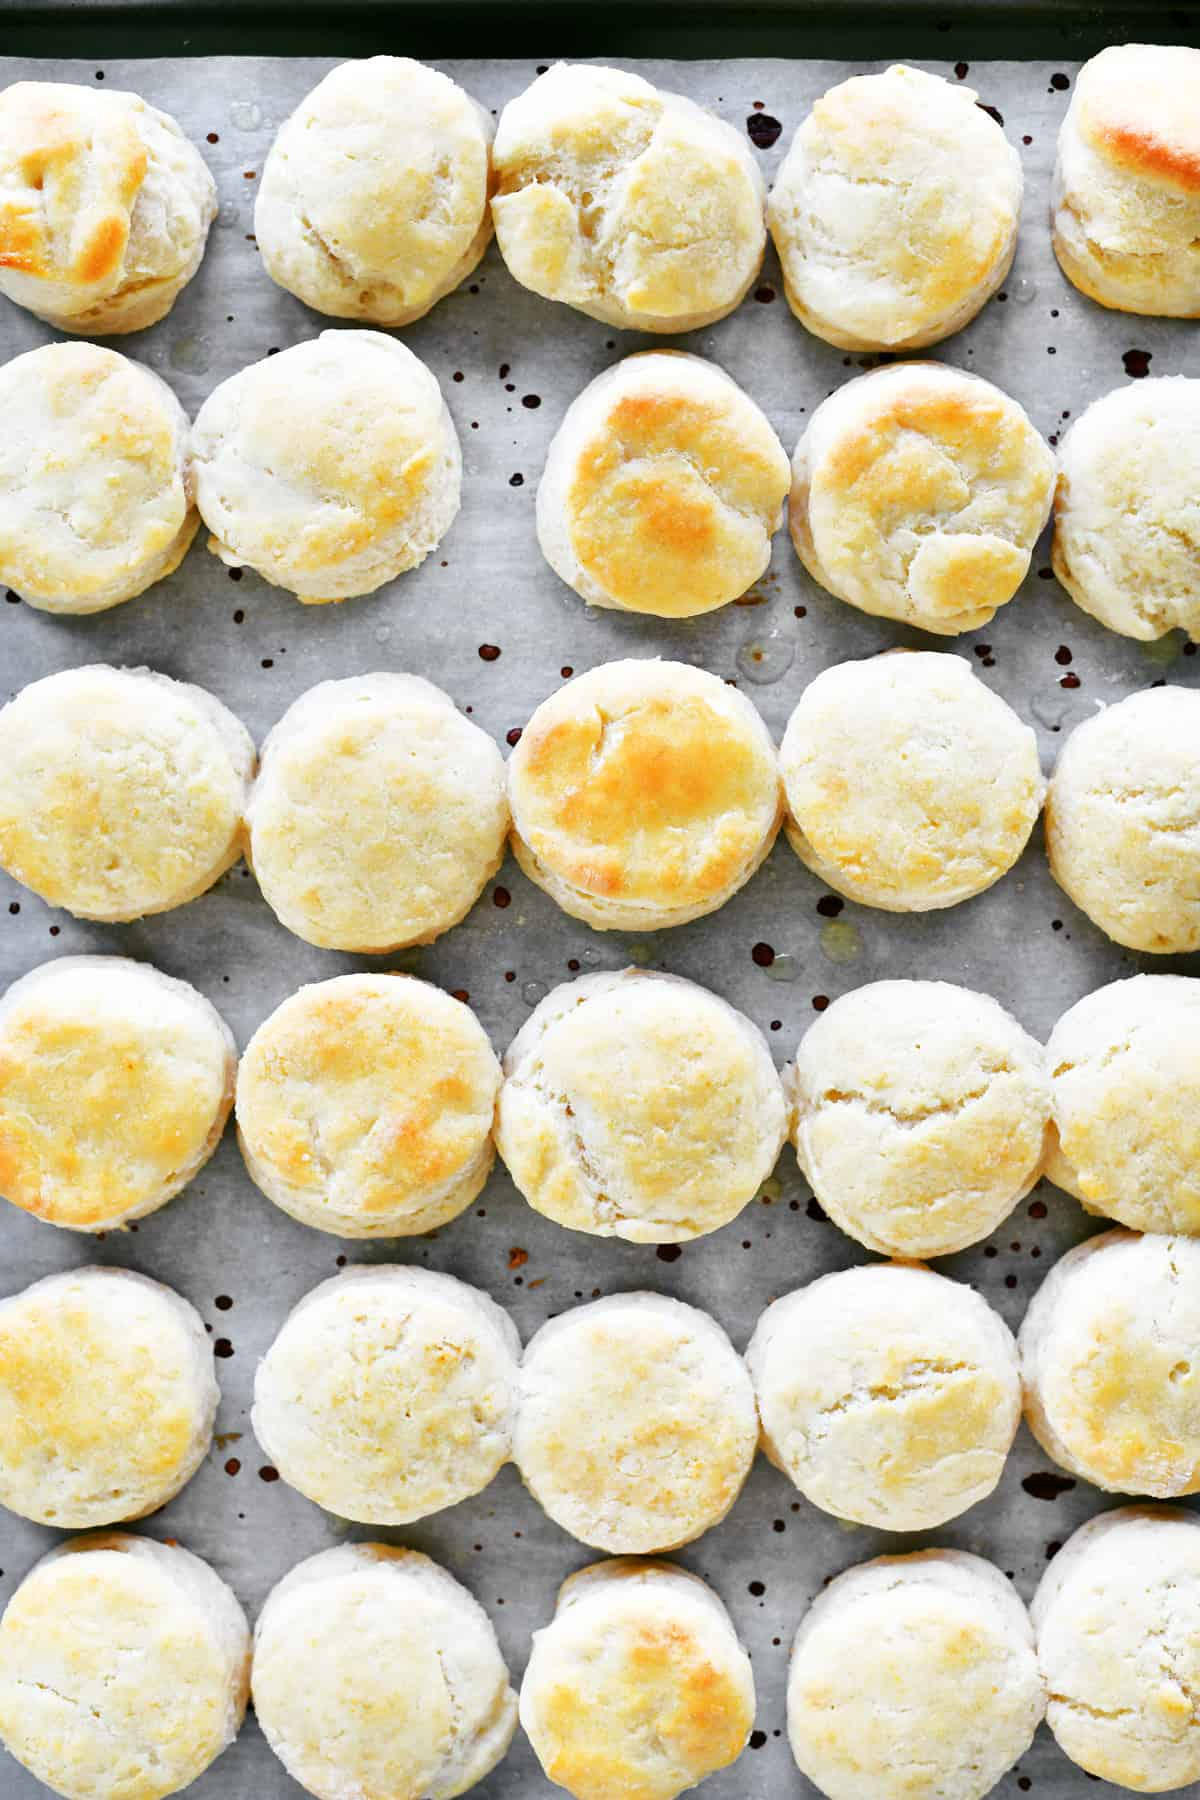 baked mini biscuits on a baking sheet